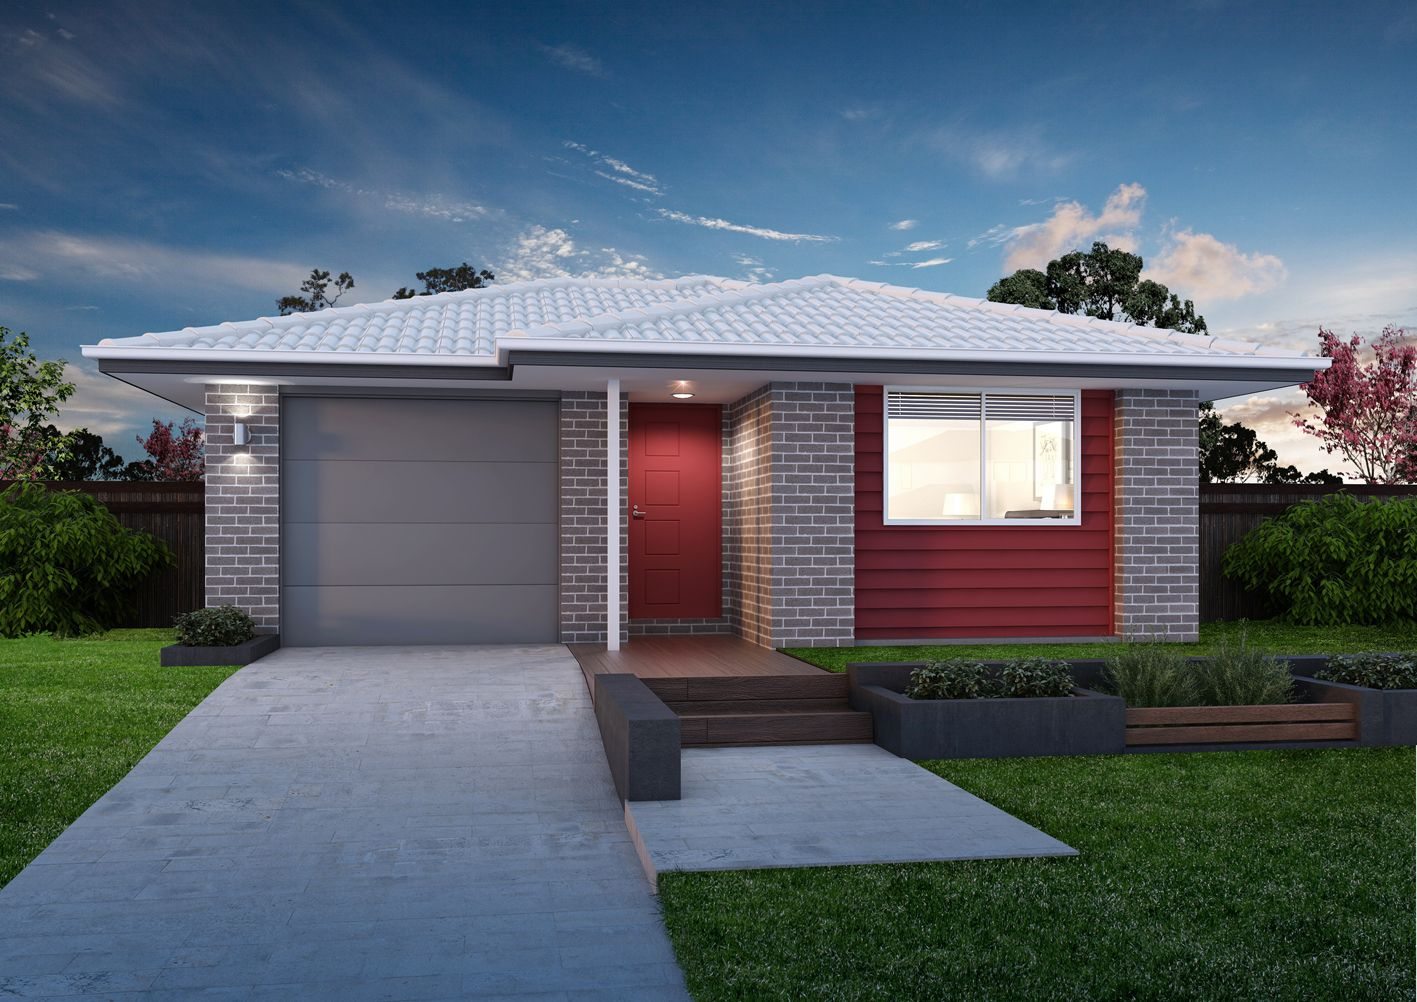 Lot 1 Evergreen Drive Sanctuary Hills, Goonellabah NSW 2480, Image 0